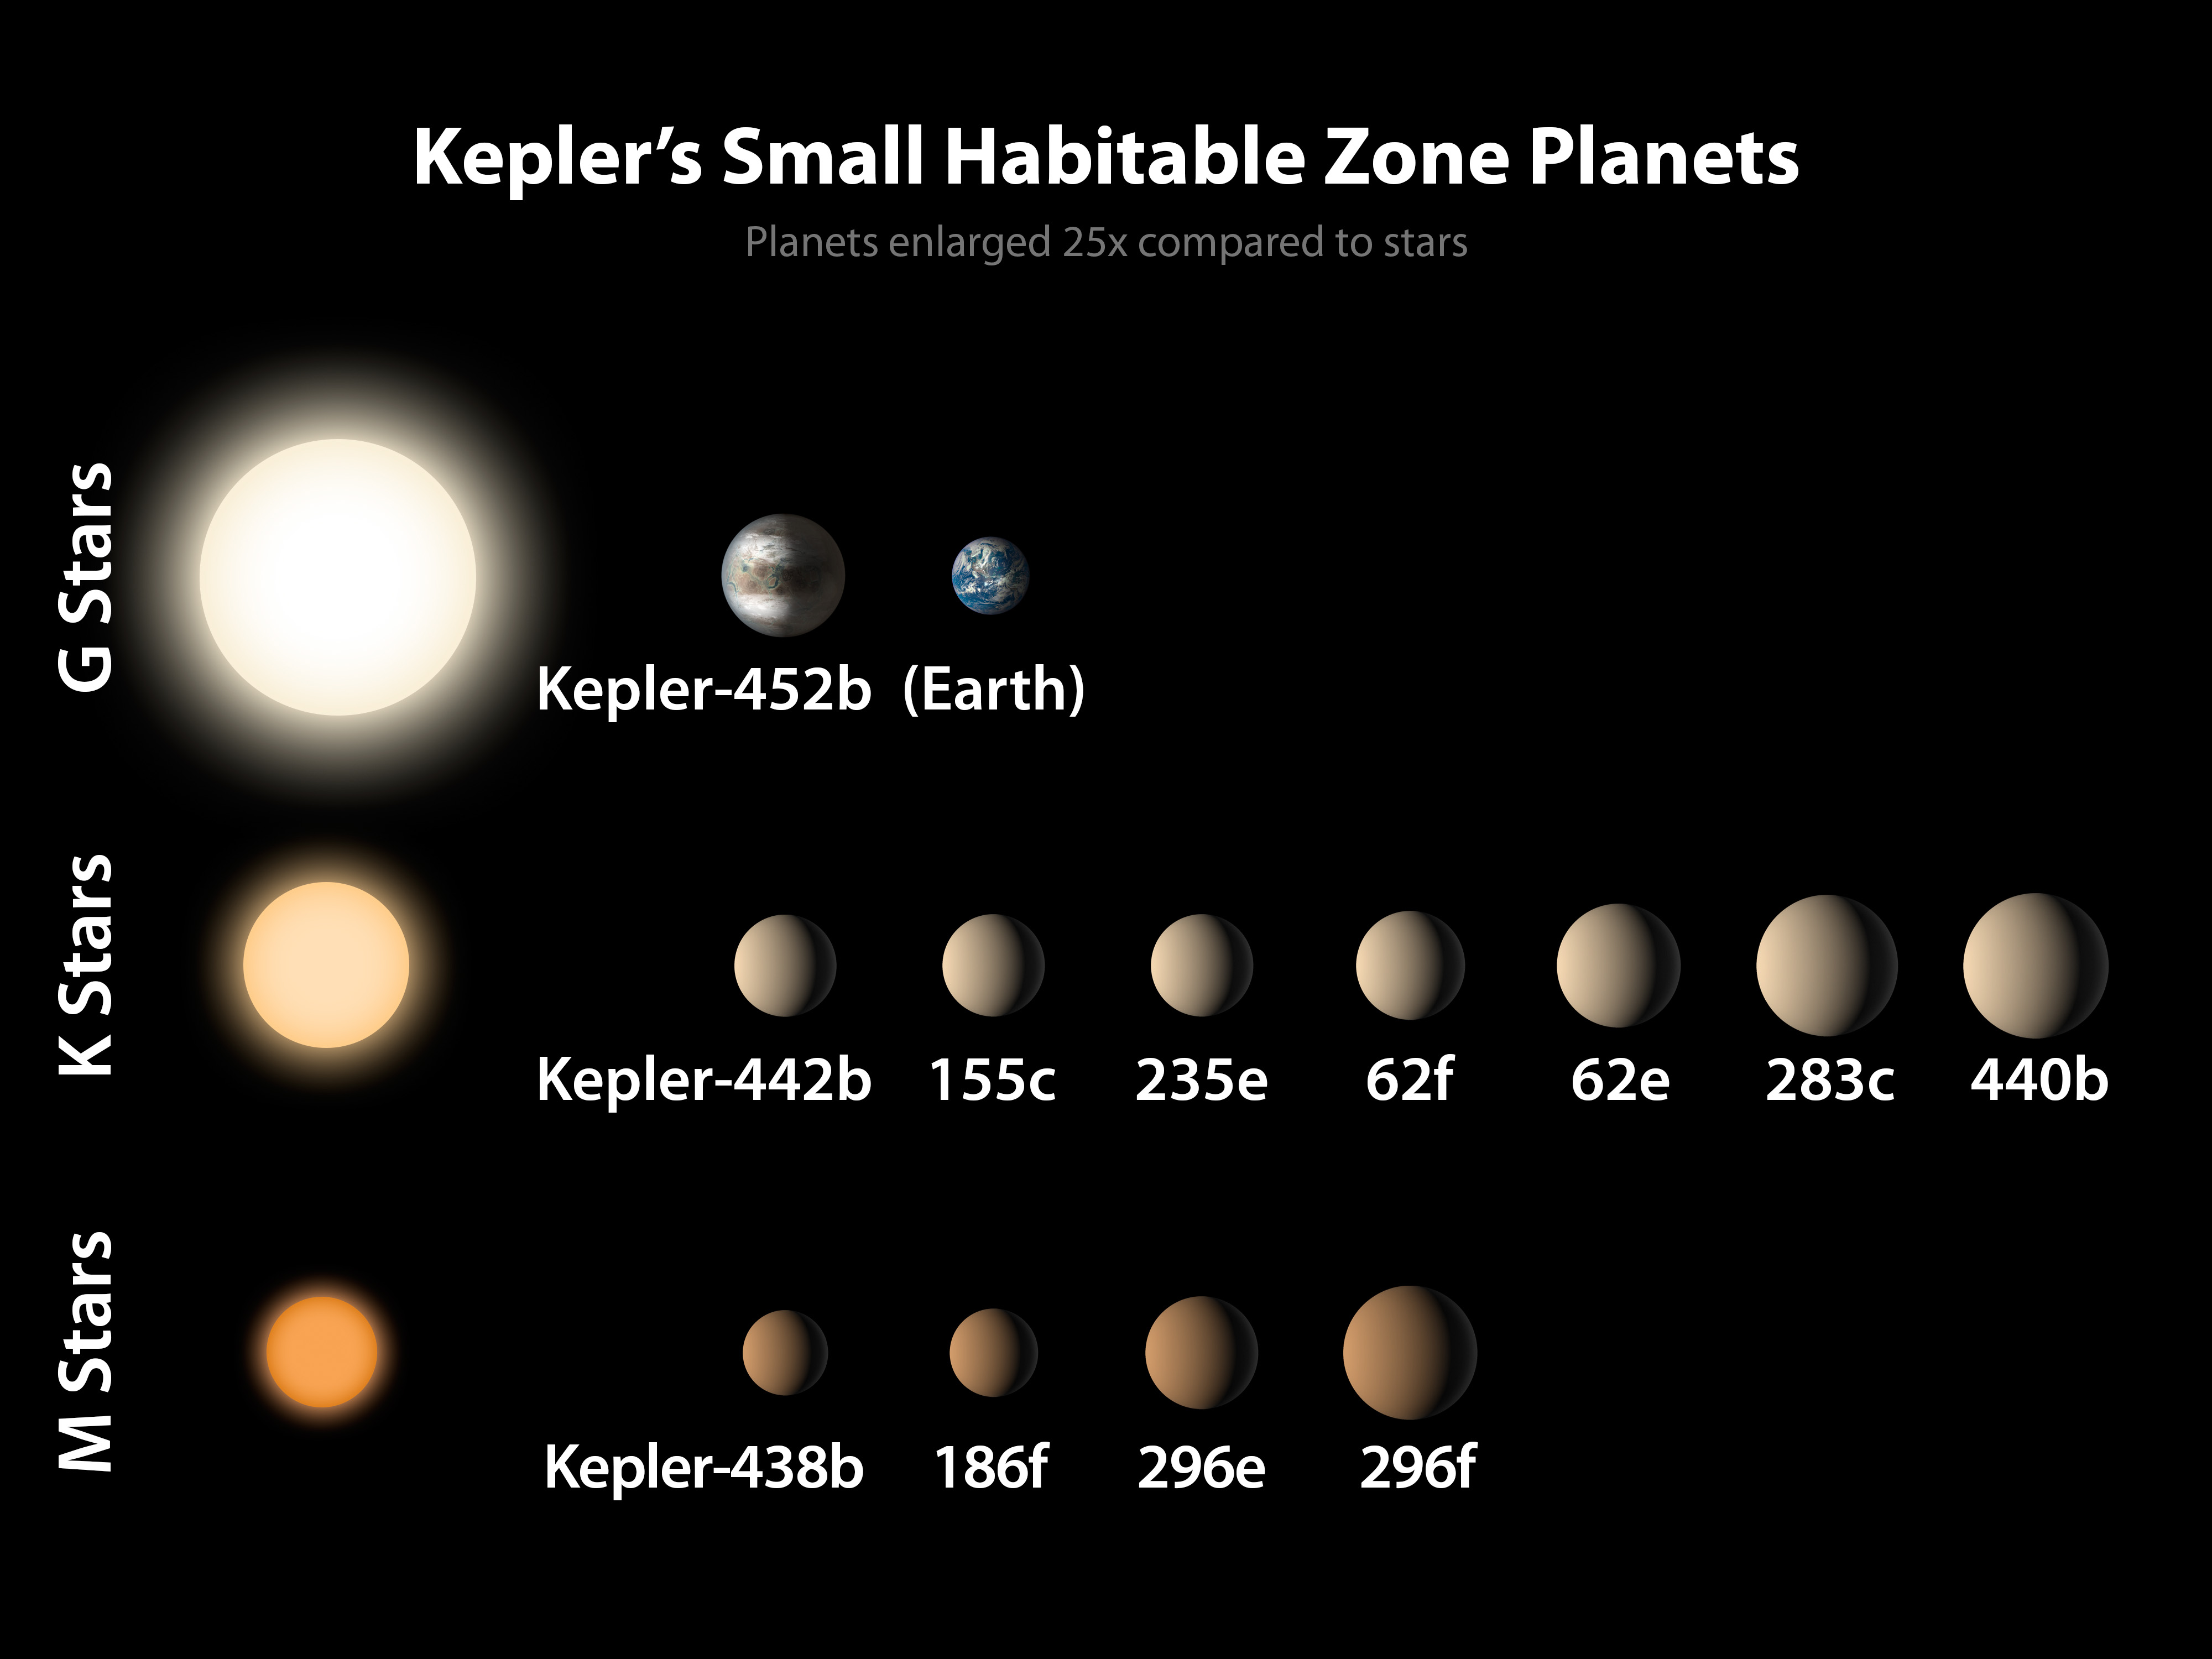 Of the 1,030 confirmed planets from Kepler, a dozen are less than twice the size of Earth and reside in the habitable zone of their host star. The sizes of the exoplanets are represented by the size of each sphere. These are arranged by size from left to right, and by the type of star they orbit, from the M stars that are significantly cooler and smaller than the sun, to the K stars that are somewhat cooler and smaller than the sun, to the G stars that include the sun. The sizes of the planets are enlarged by 25X compared to the stars. The Earth is shown for reference. NASA